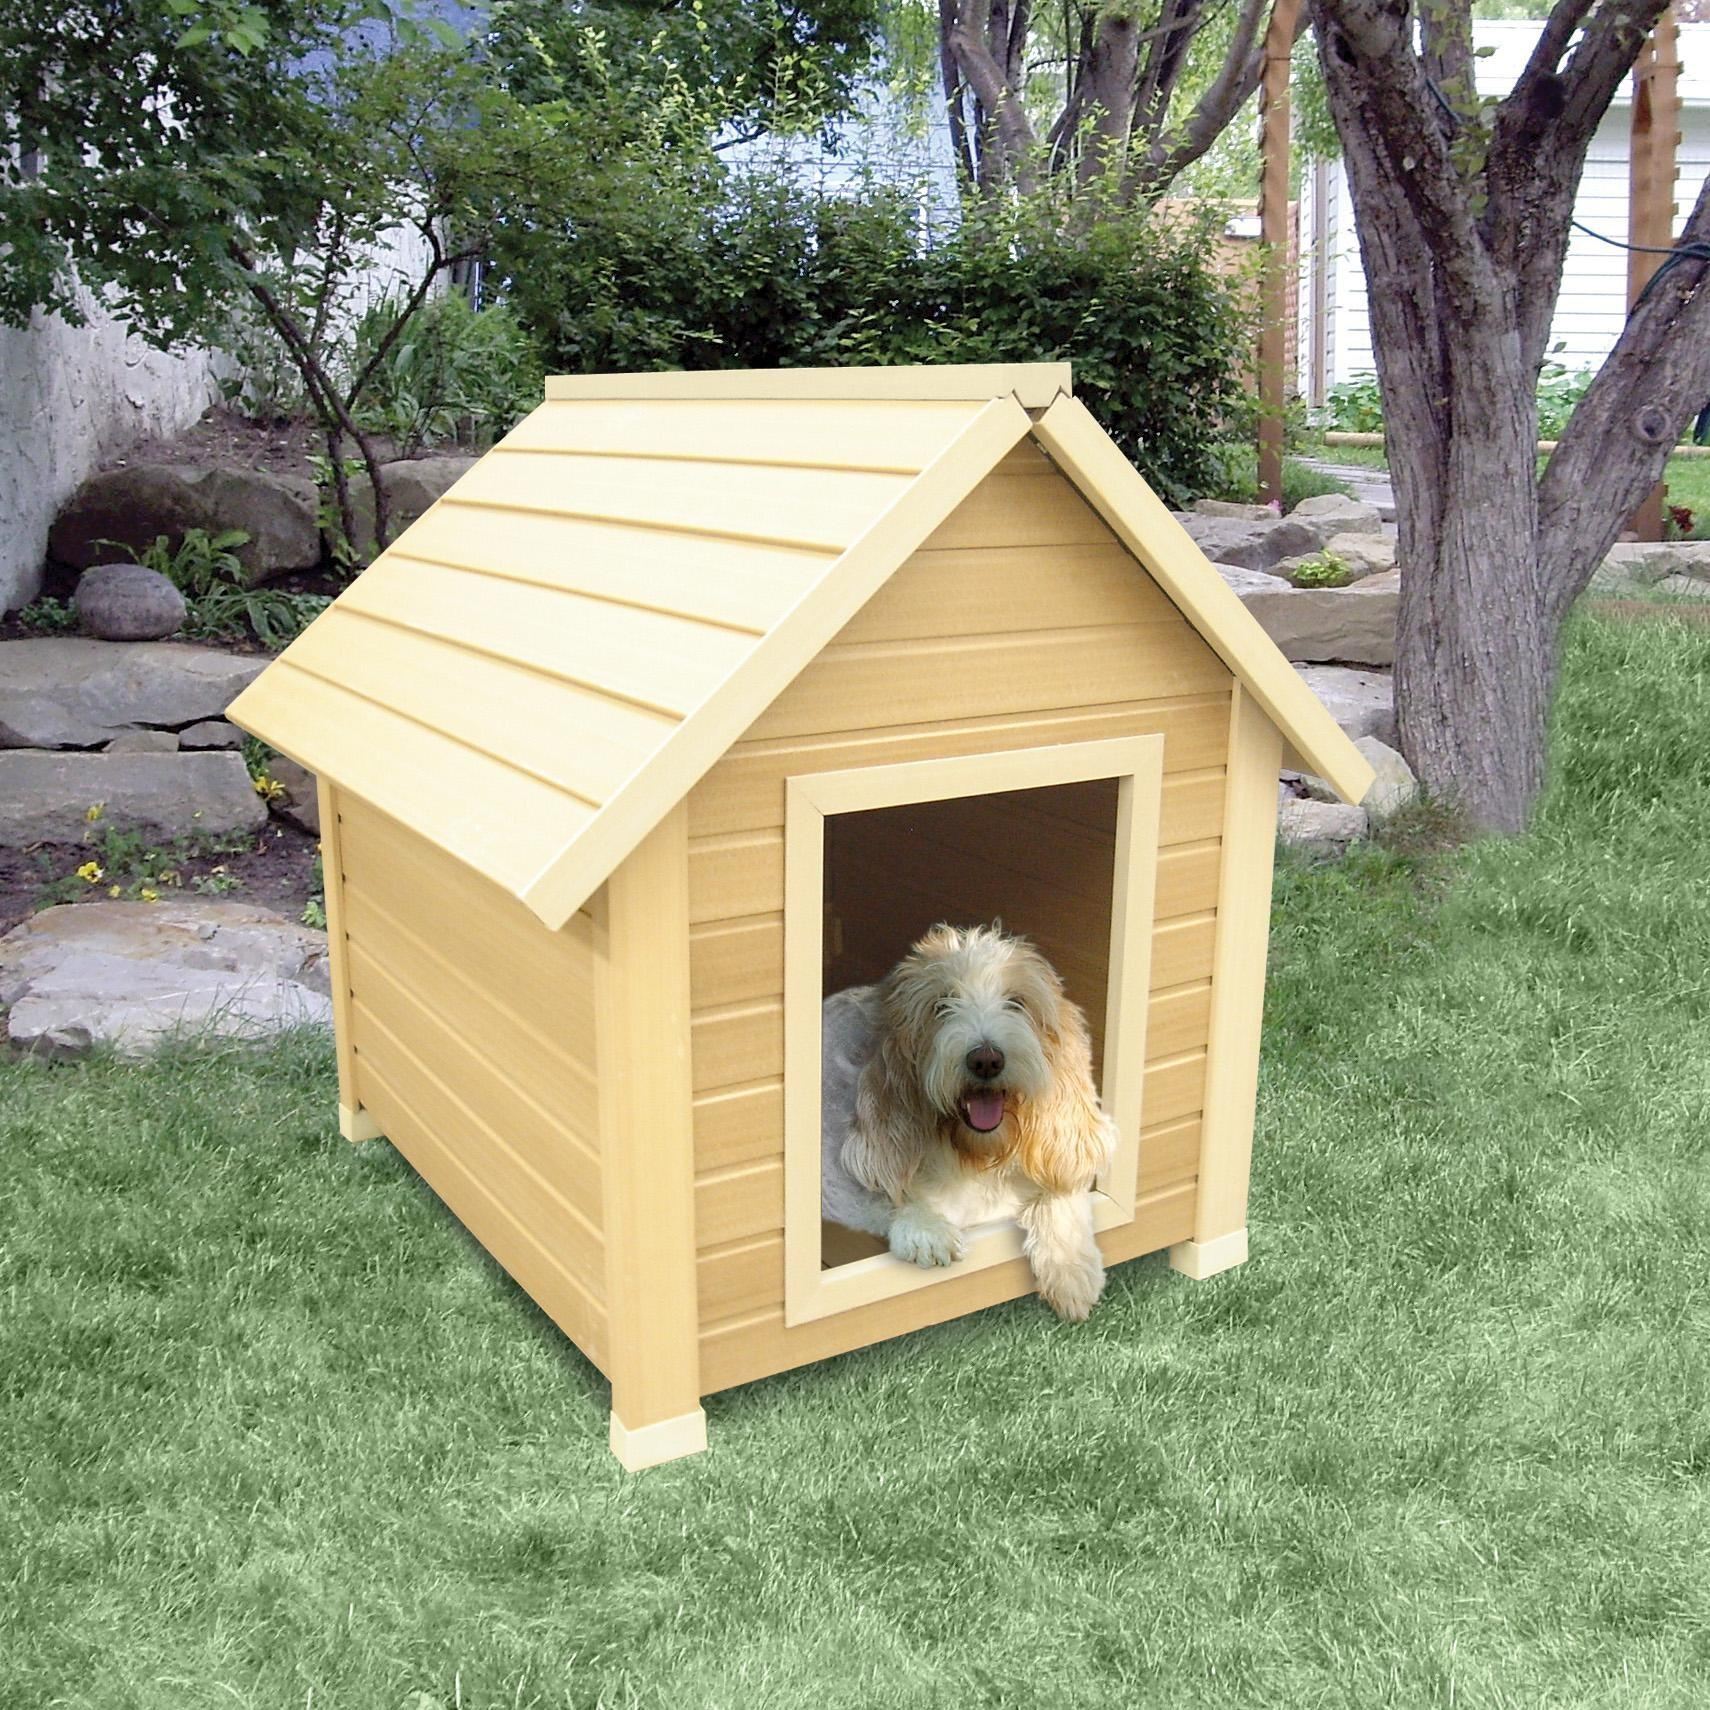 Show Your Dog Some Love Buy Him Warm Wooden House